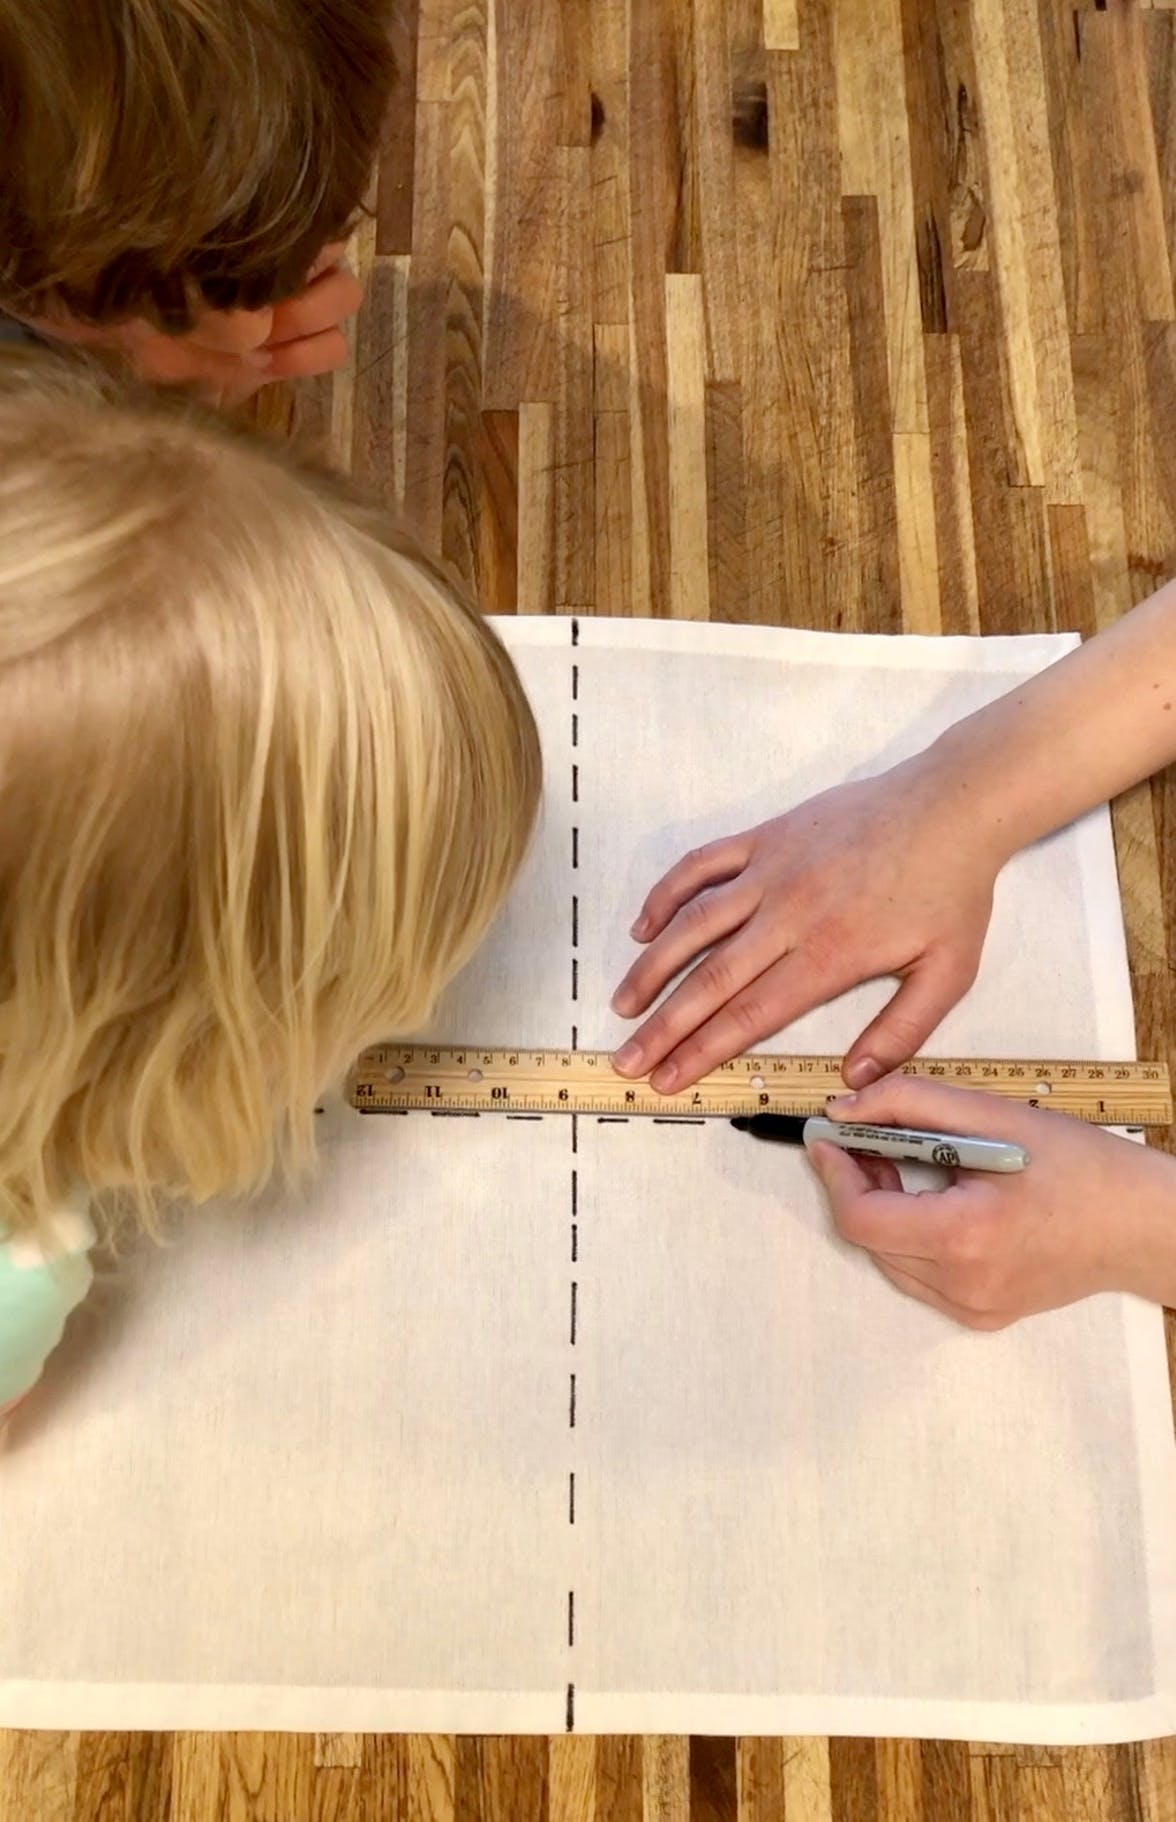 Two young children watching someone draw lines on a napkin